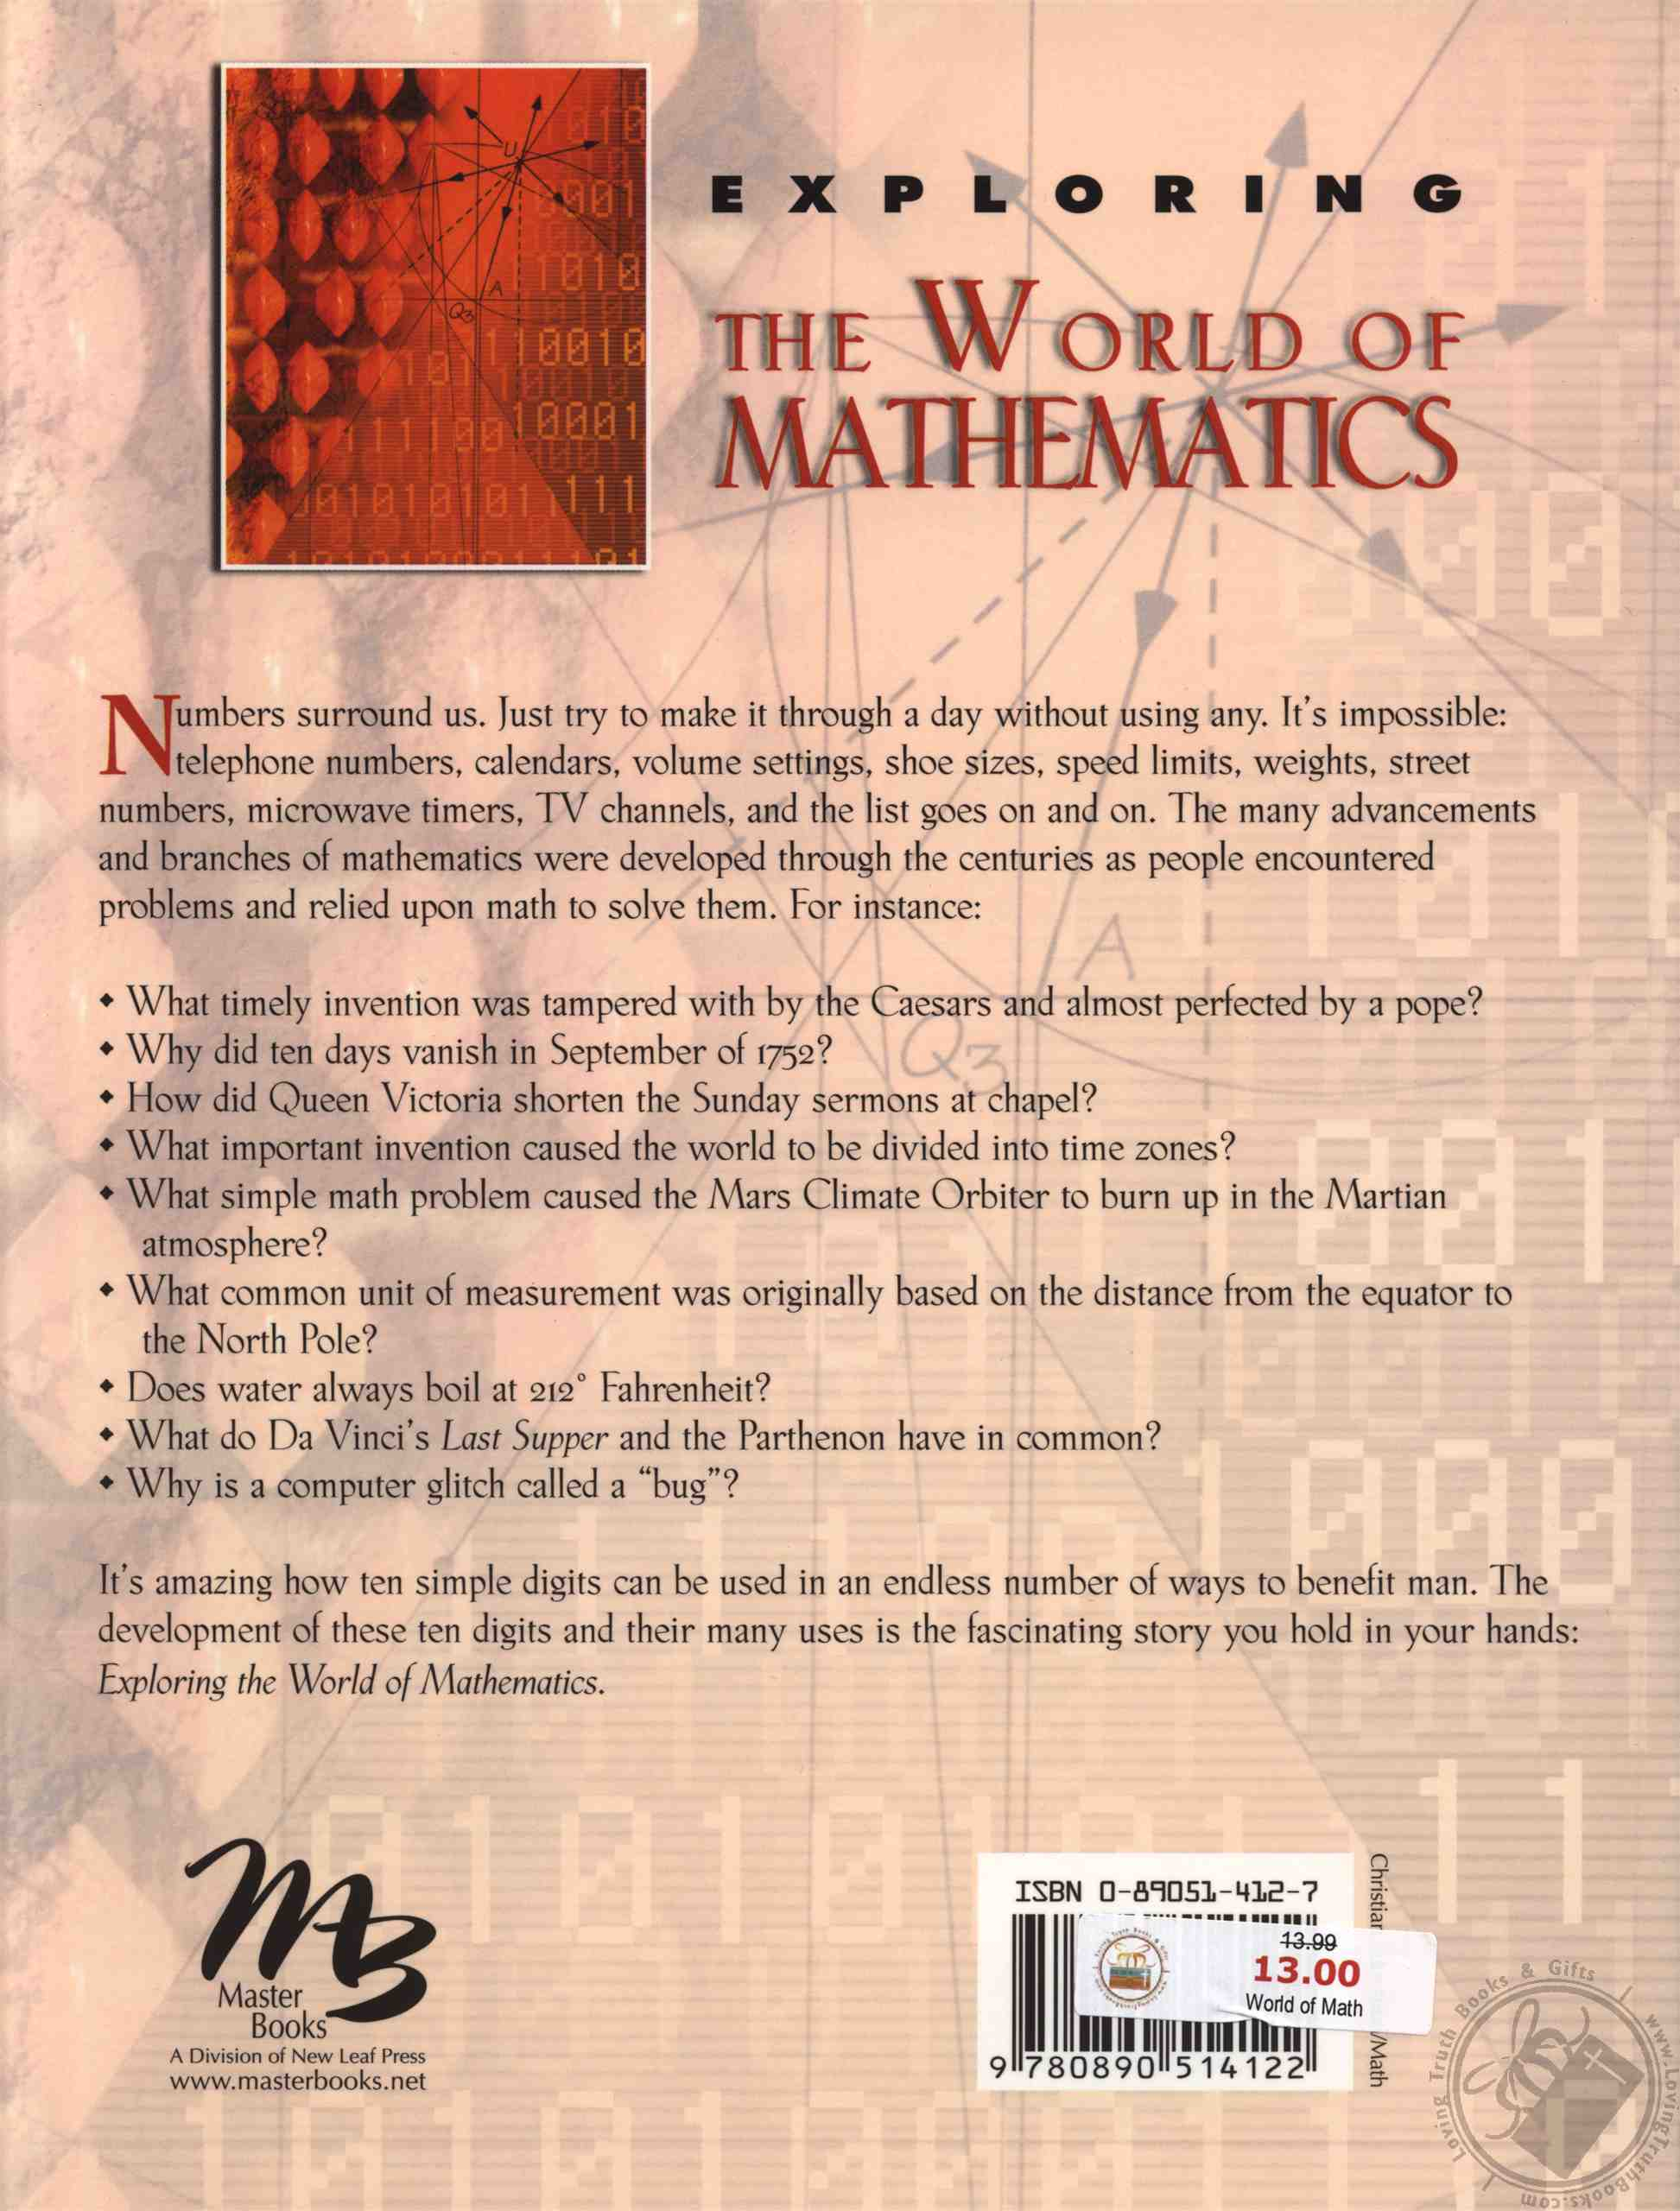 Exploring the World of Mathematics: From Ancient Record Keeping to